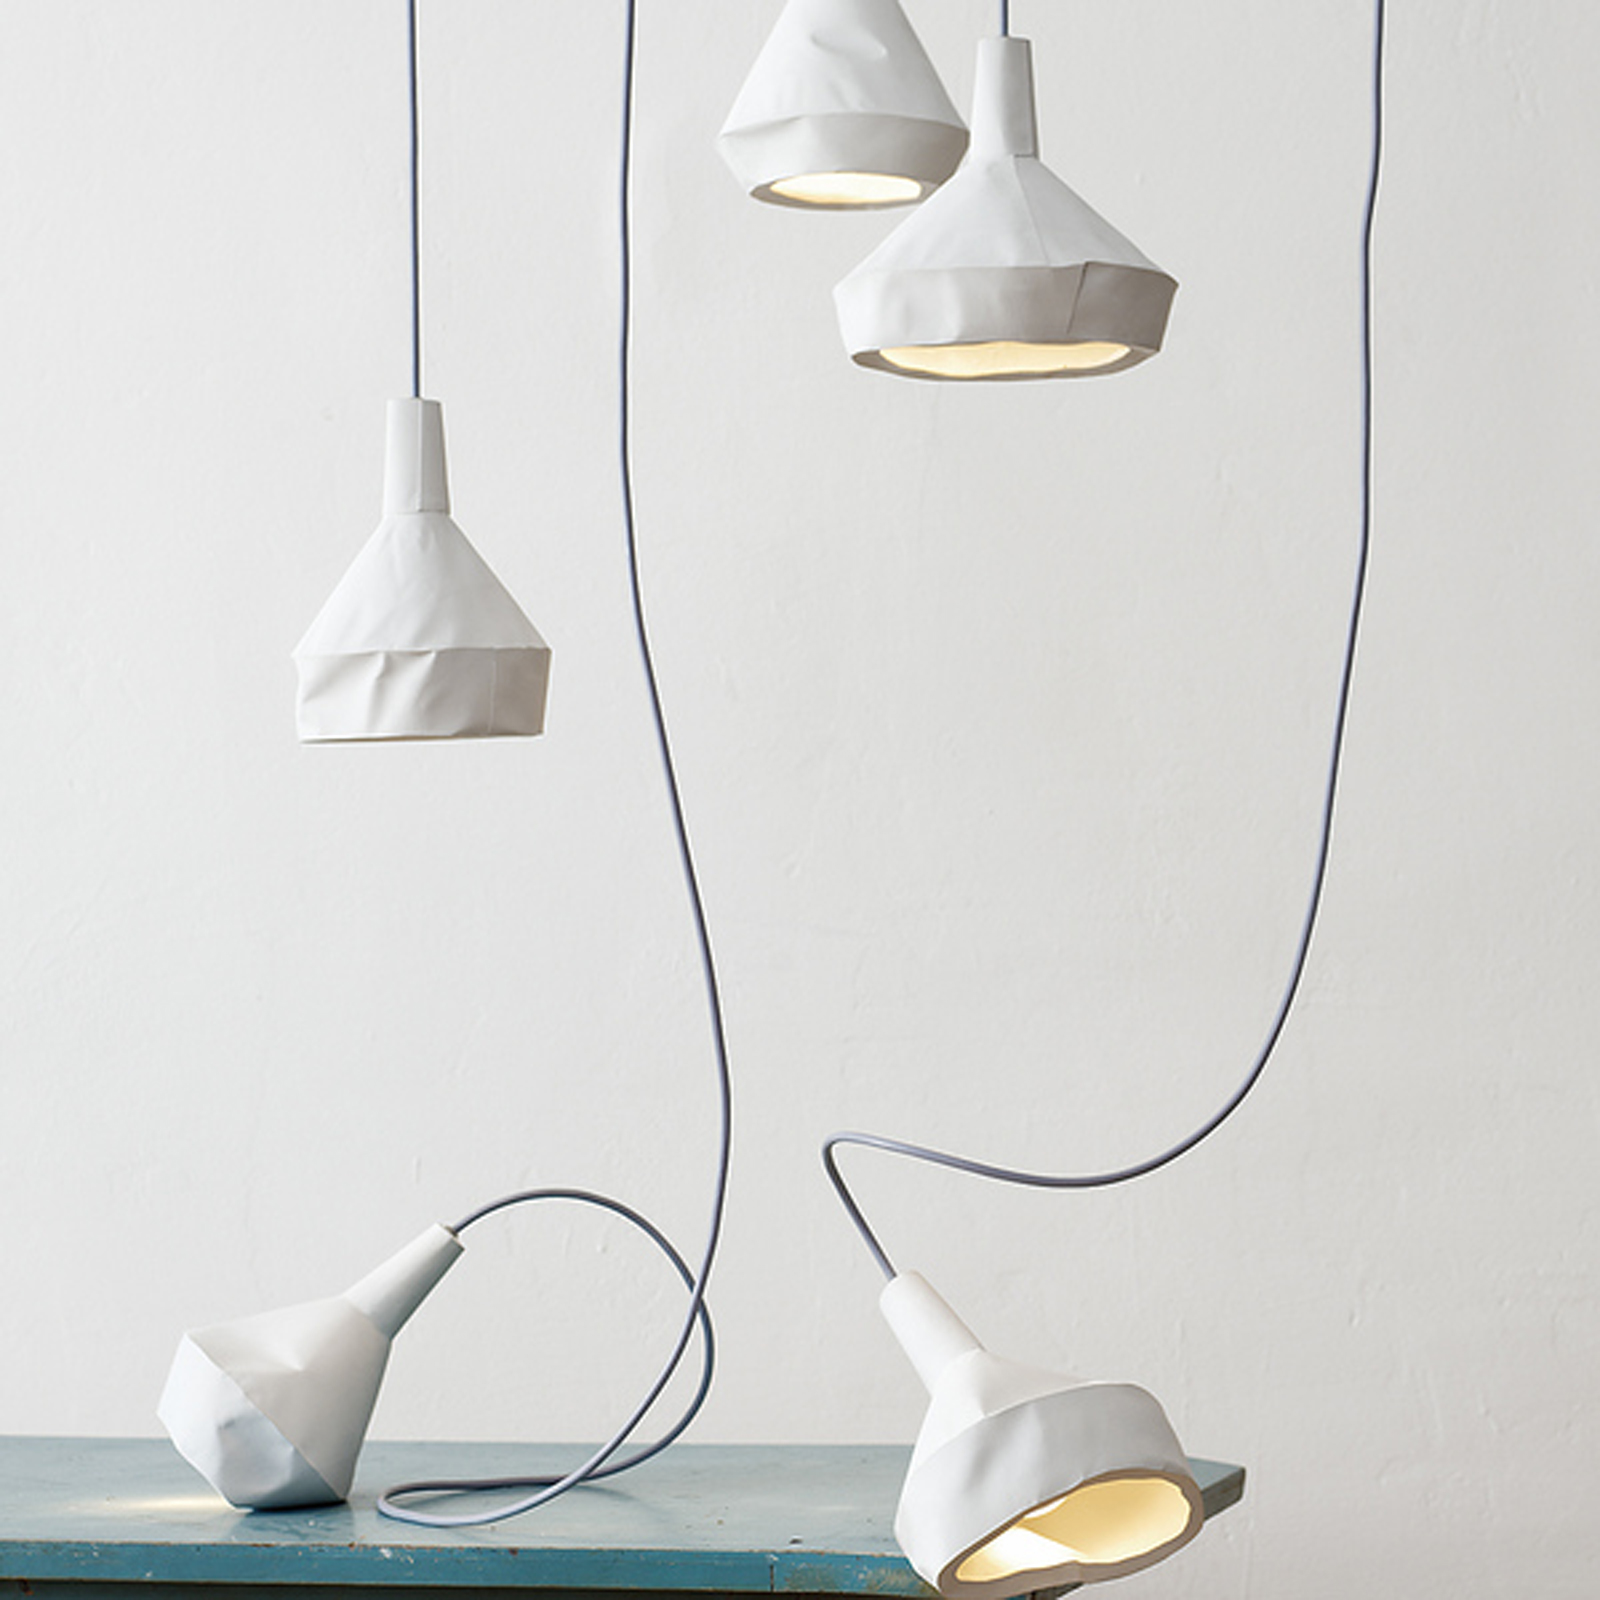 """Thought these lamps by <a href=""""http://aust-amelung.com/"""">Miriam Aust and Sebastian Amelung</a> appear to be featherweight paper, they're actually concrete!"""